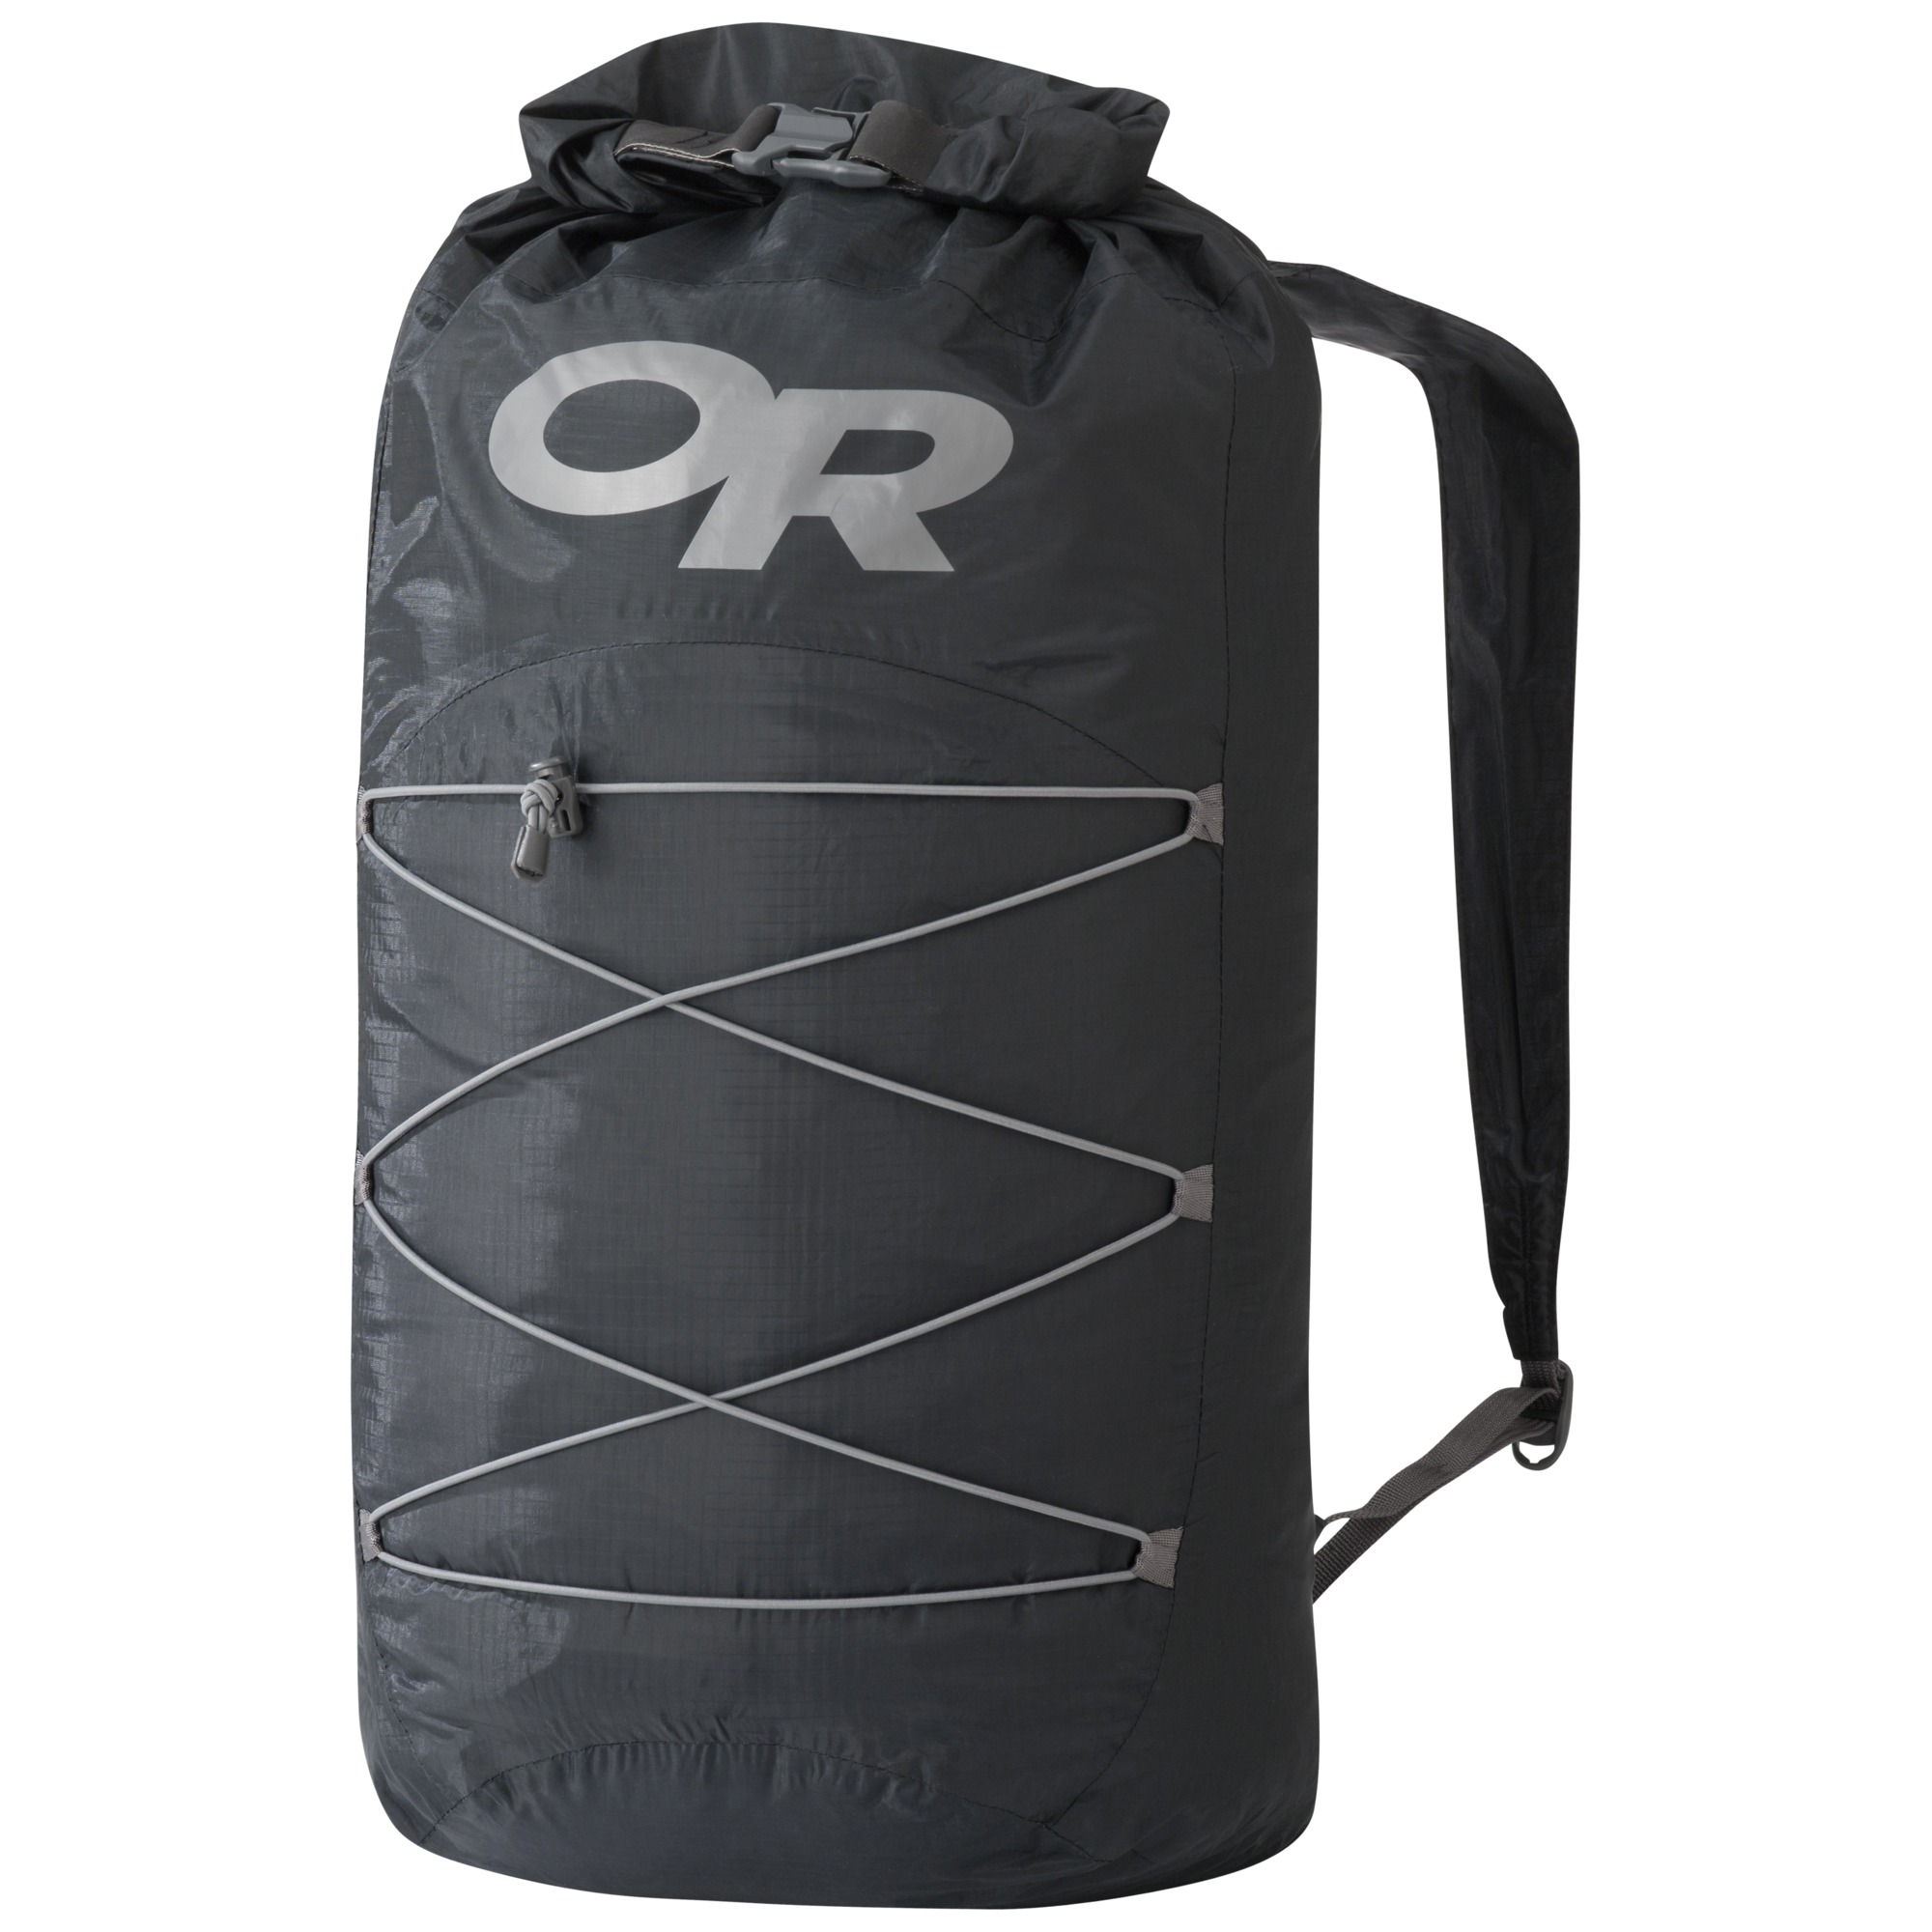 b8de74b9e580 Outdoor Research Dry Isolation Pack